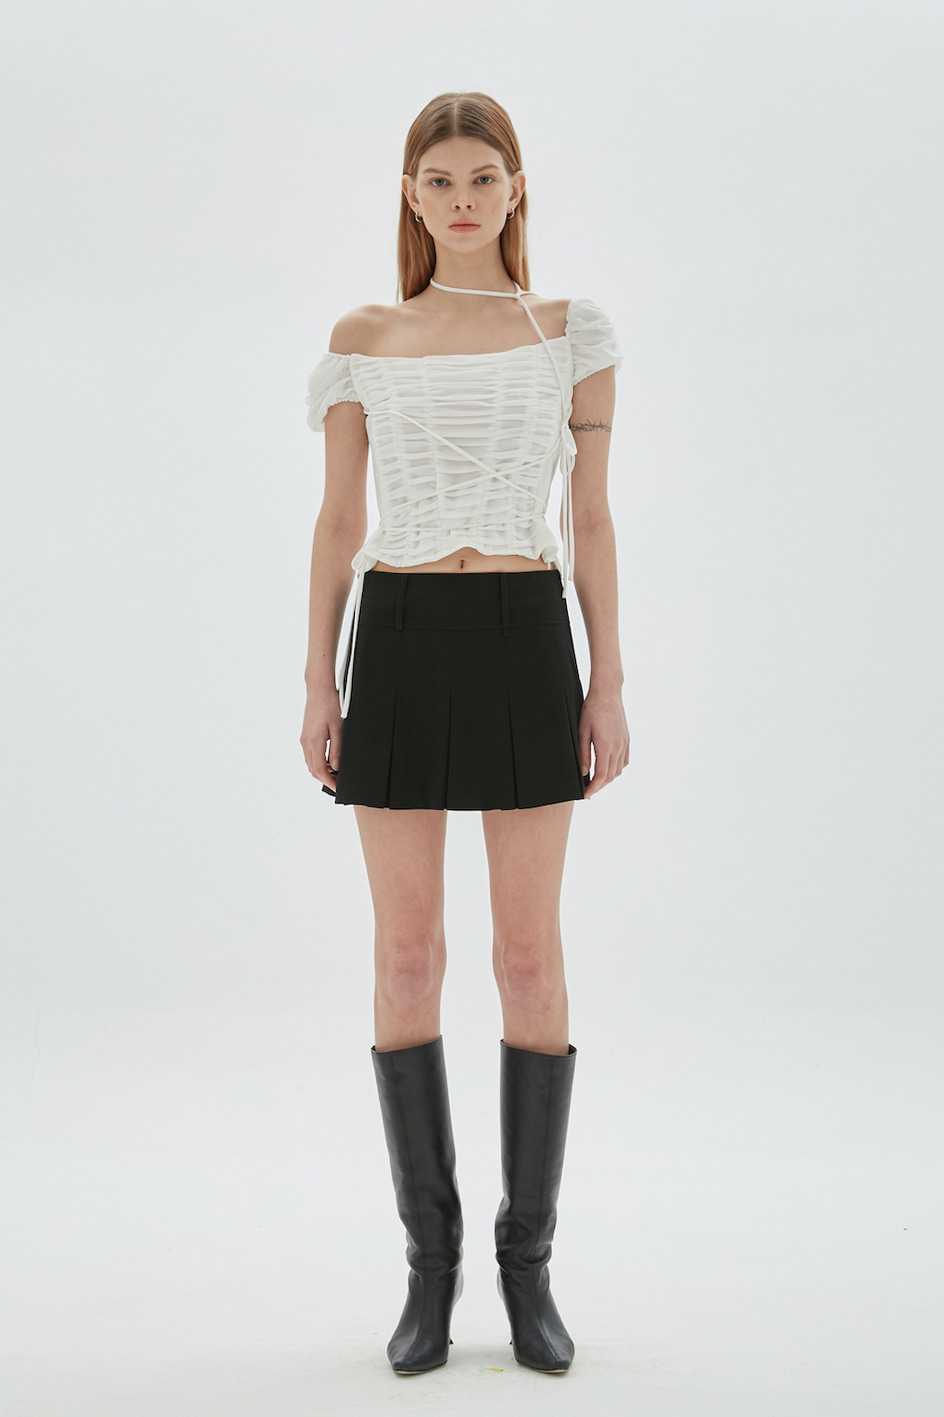 [DROP 2] BACK TO BASIC SKIRT